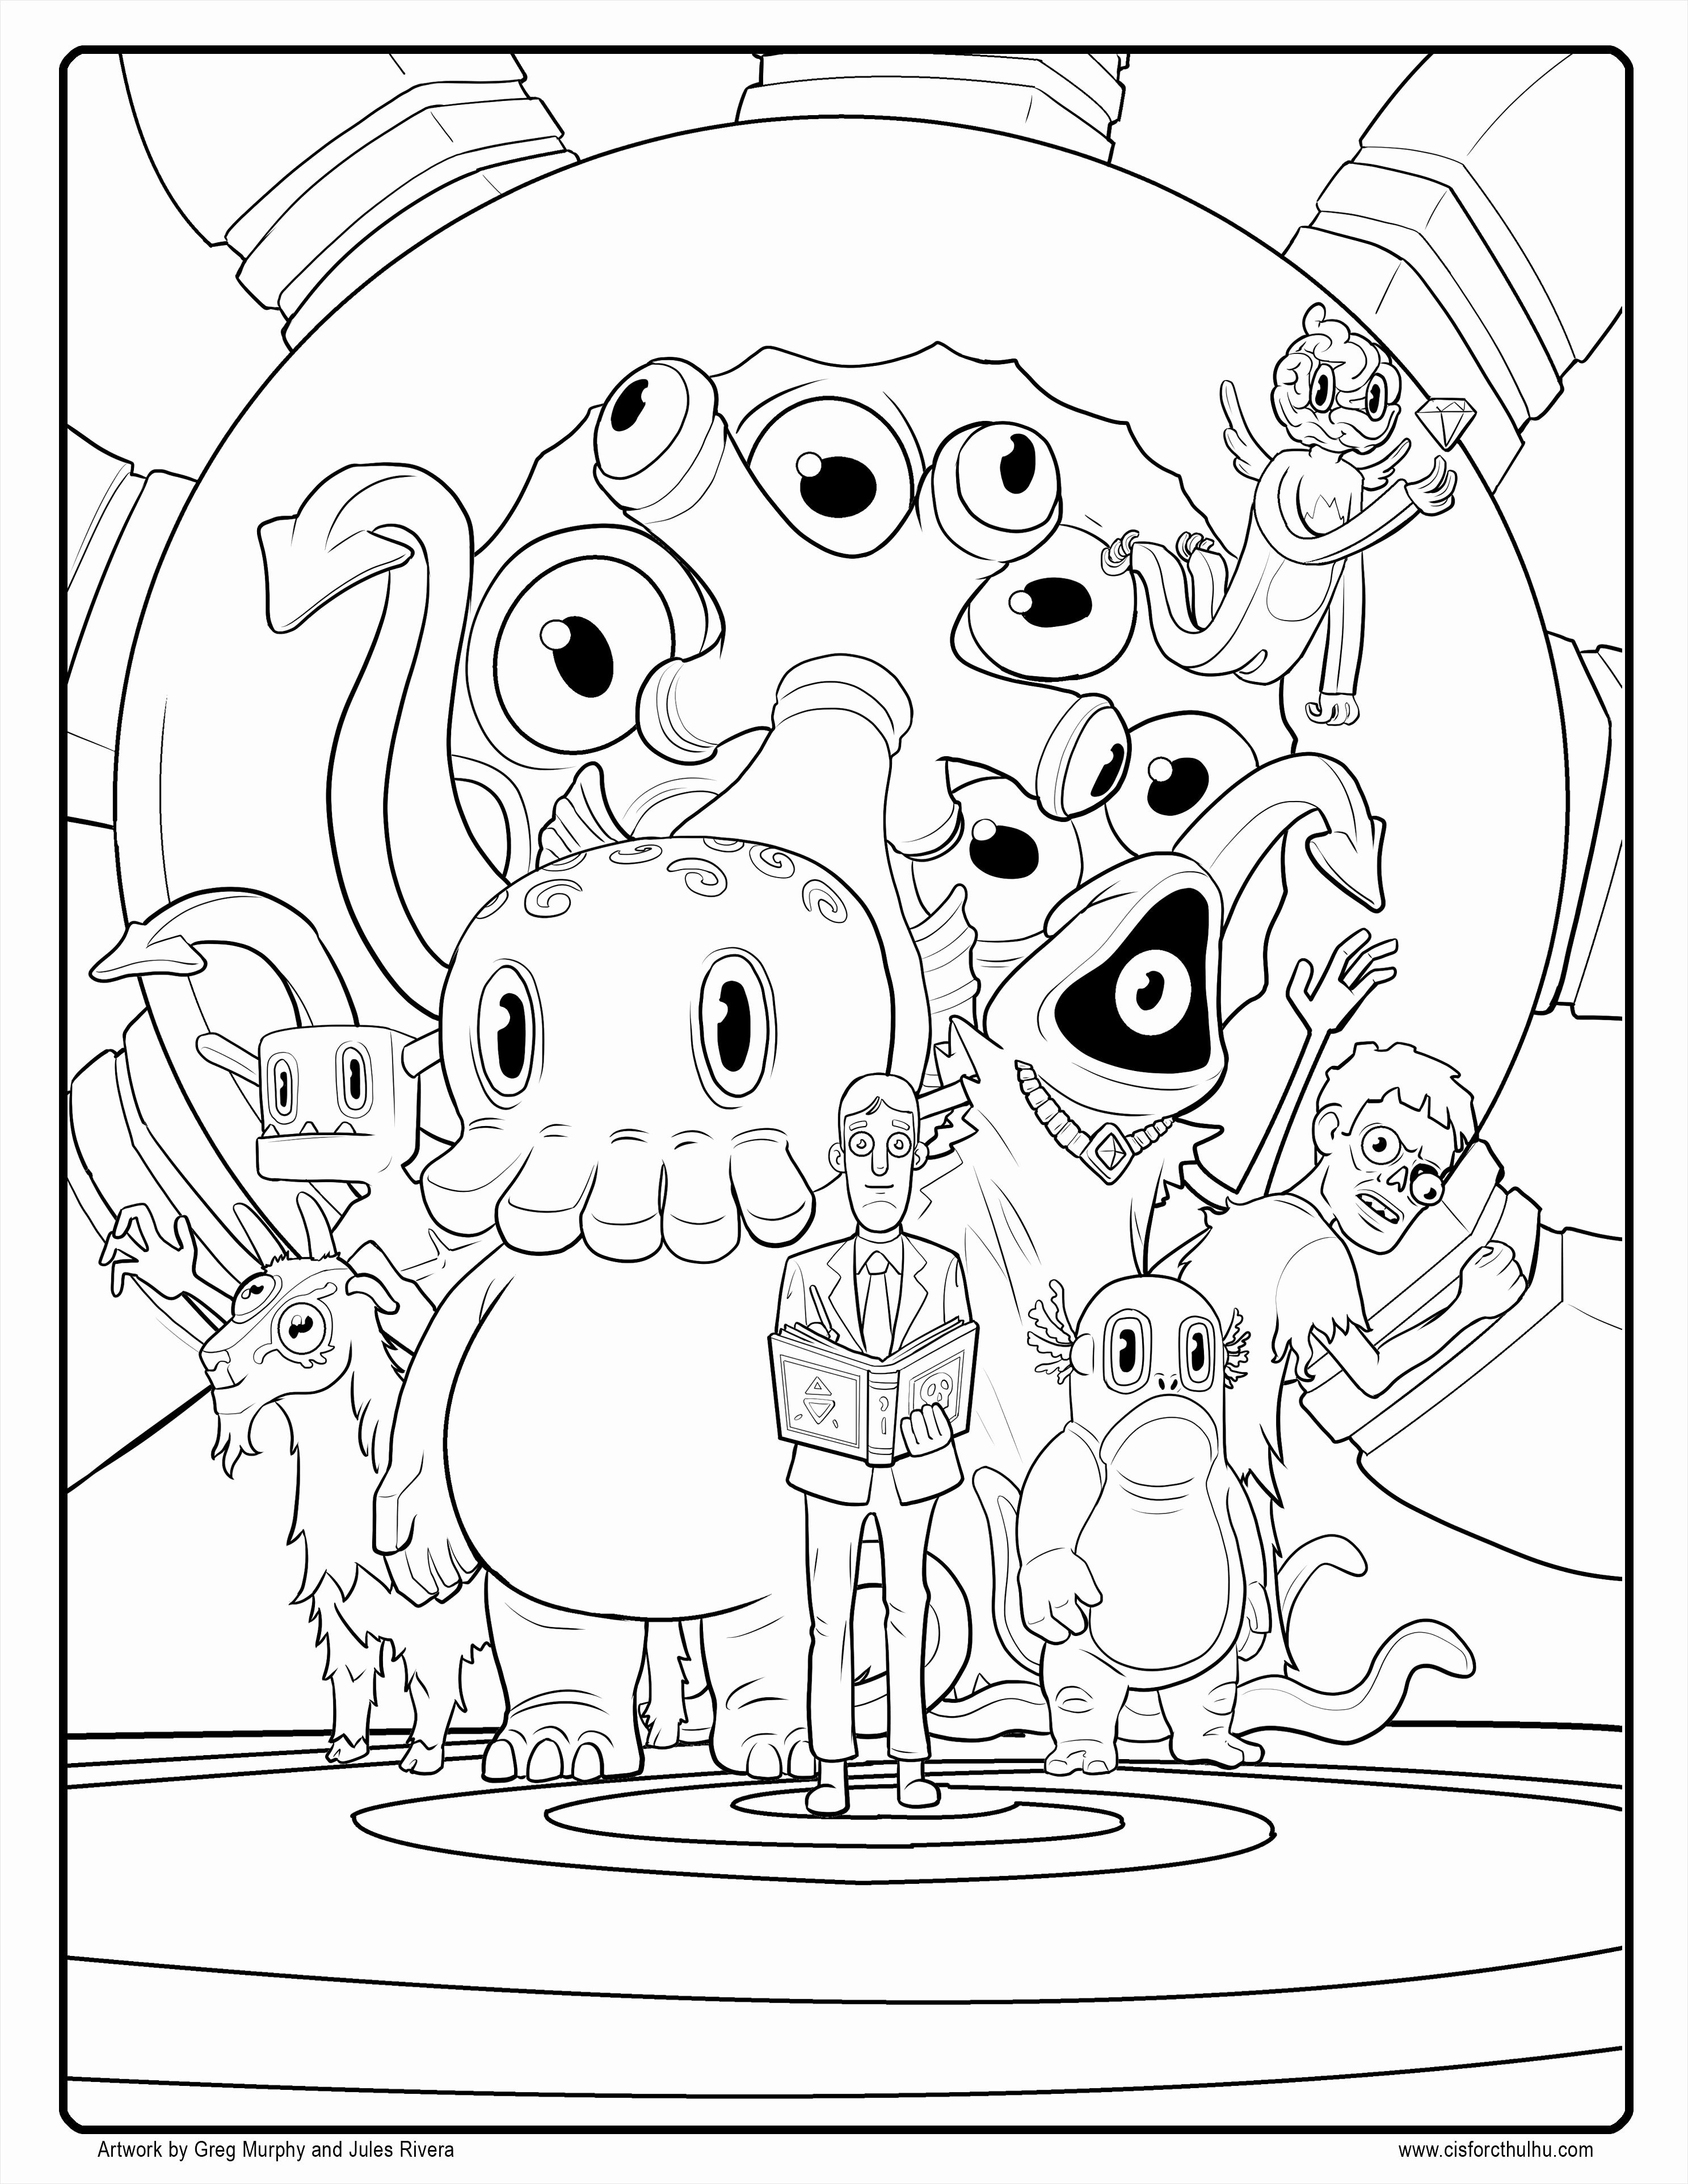 Animation Coloring Pages  Download 8i - Free For kids